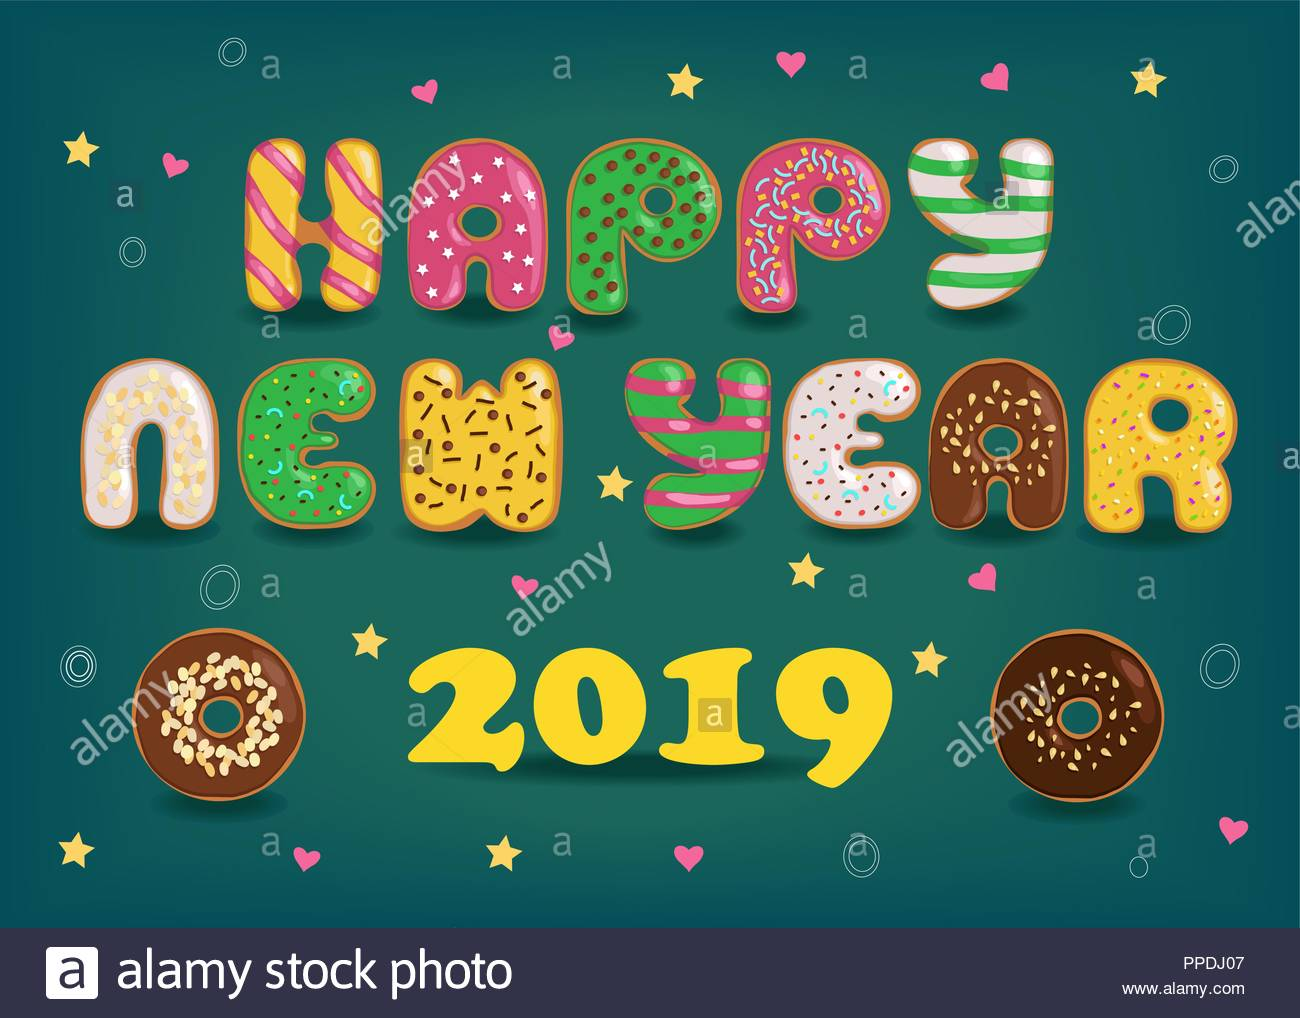 happy new year 2019 artistic colorful letters as sweet donuts with cream and nuts decor dark green background with confetti of colorful hearts and s